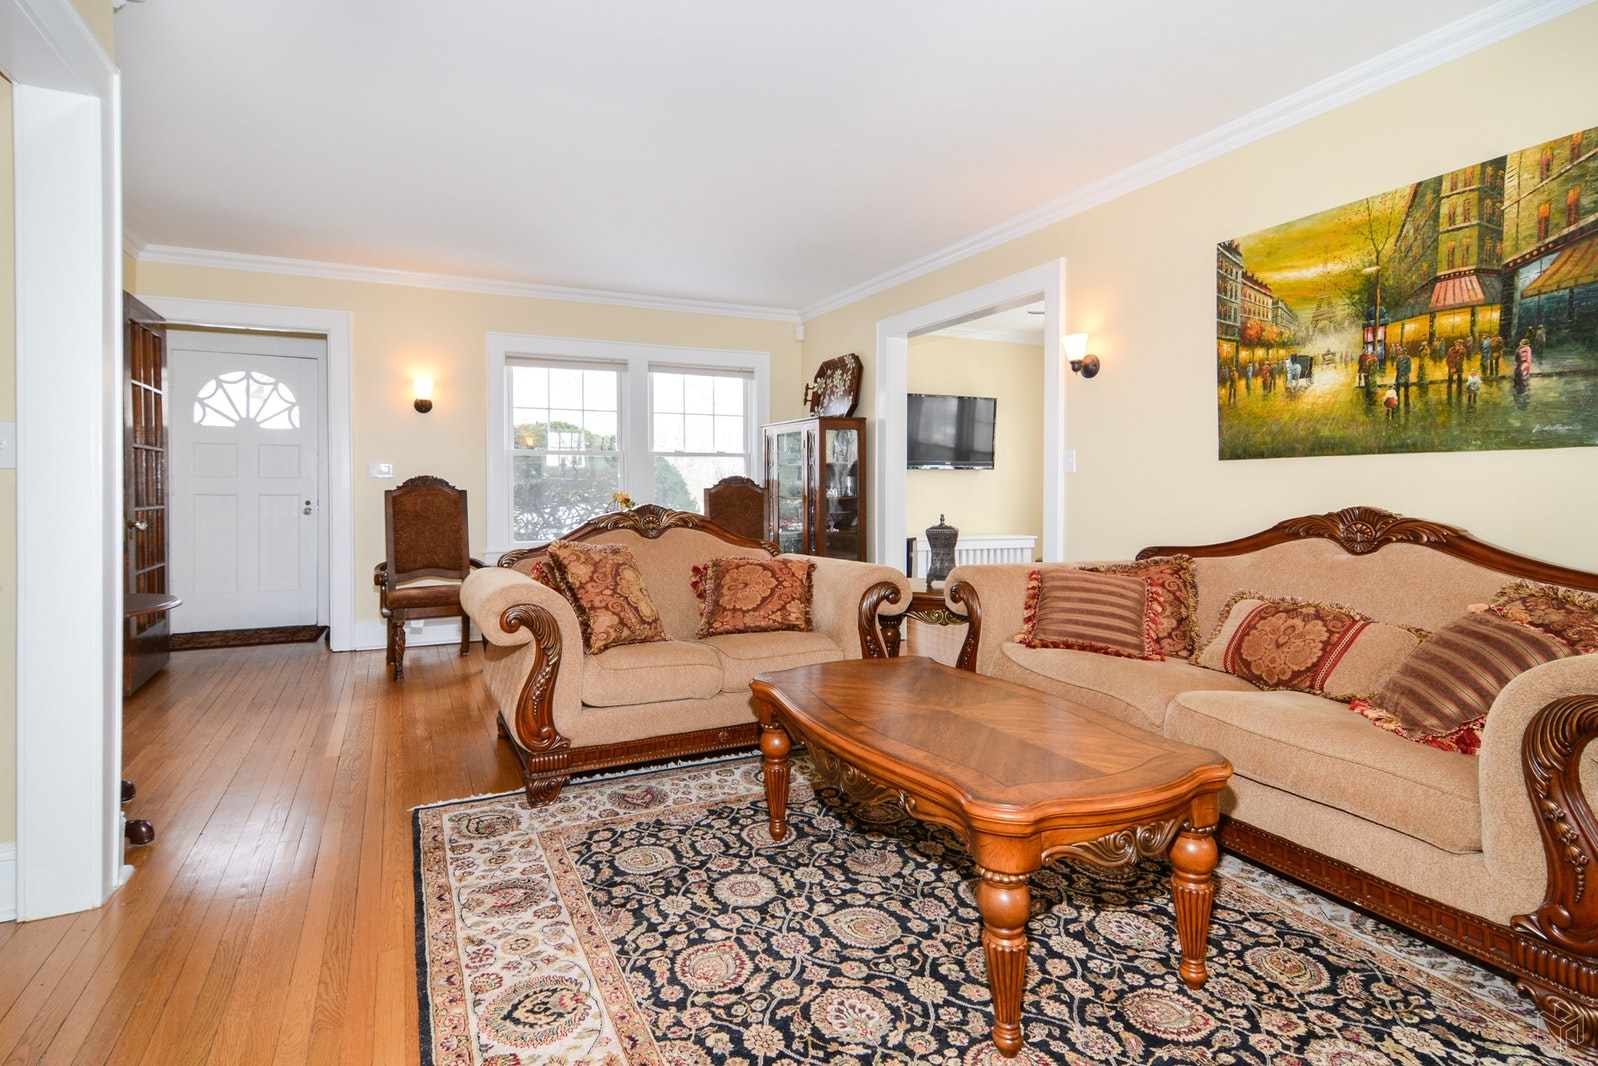 53 Pease Avenue, Verona, Essex County, New Jersey, 07044, $599,000, Property For Sale, Halstead Real Estate, Photo 3